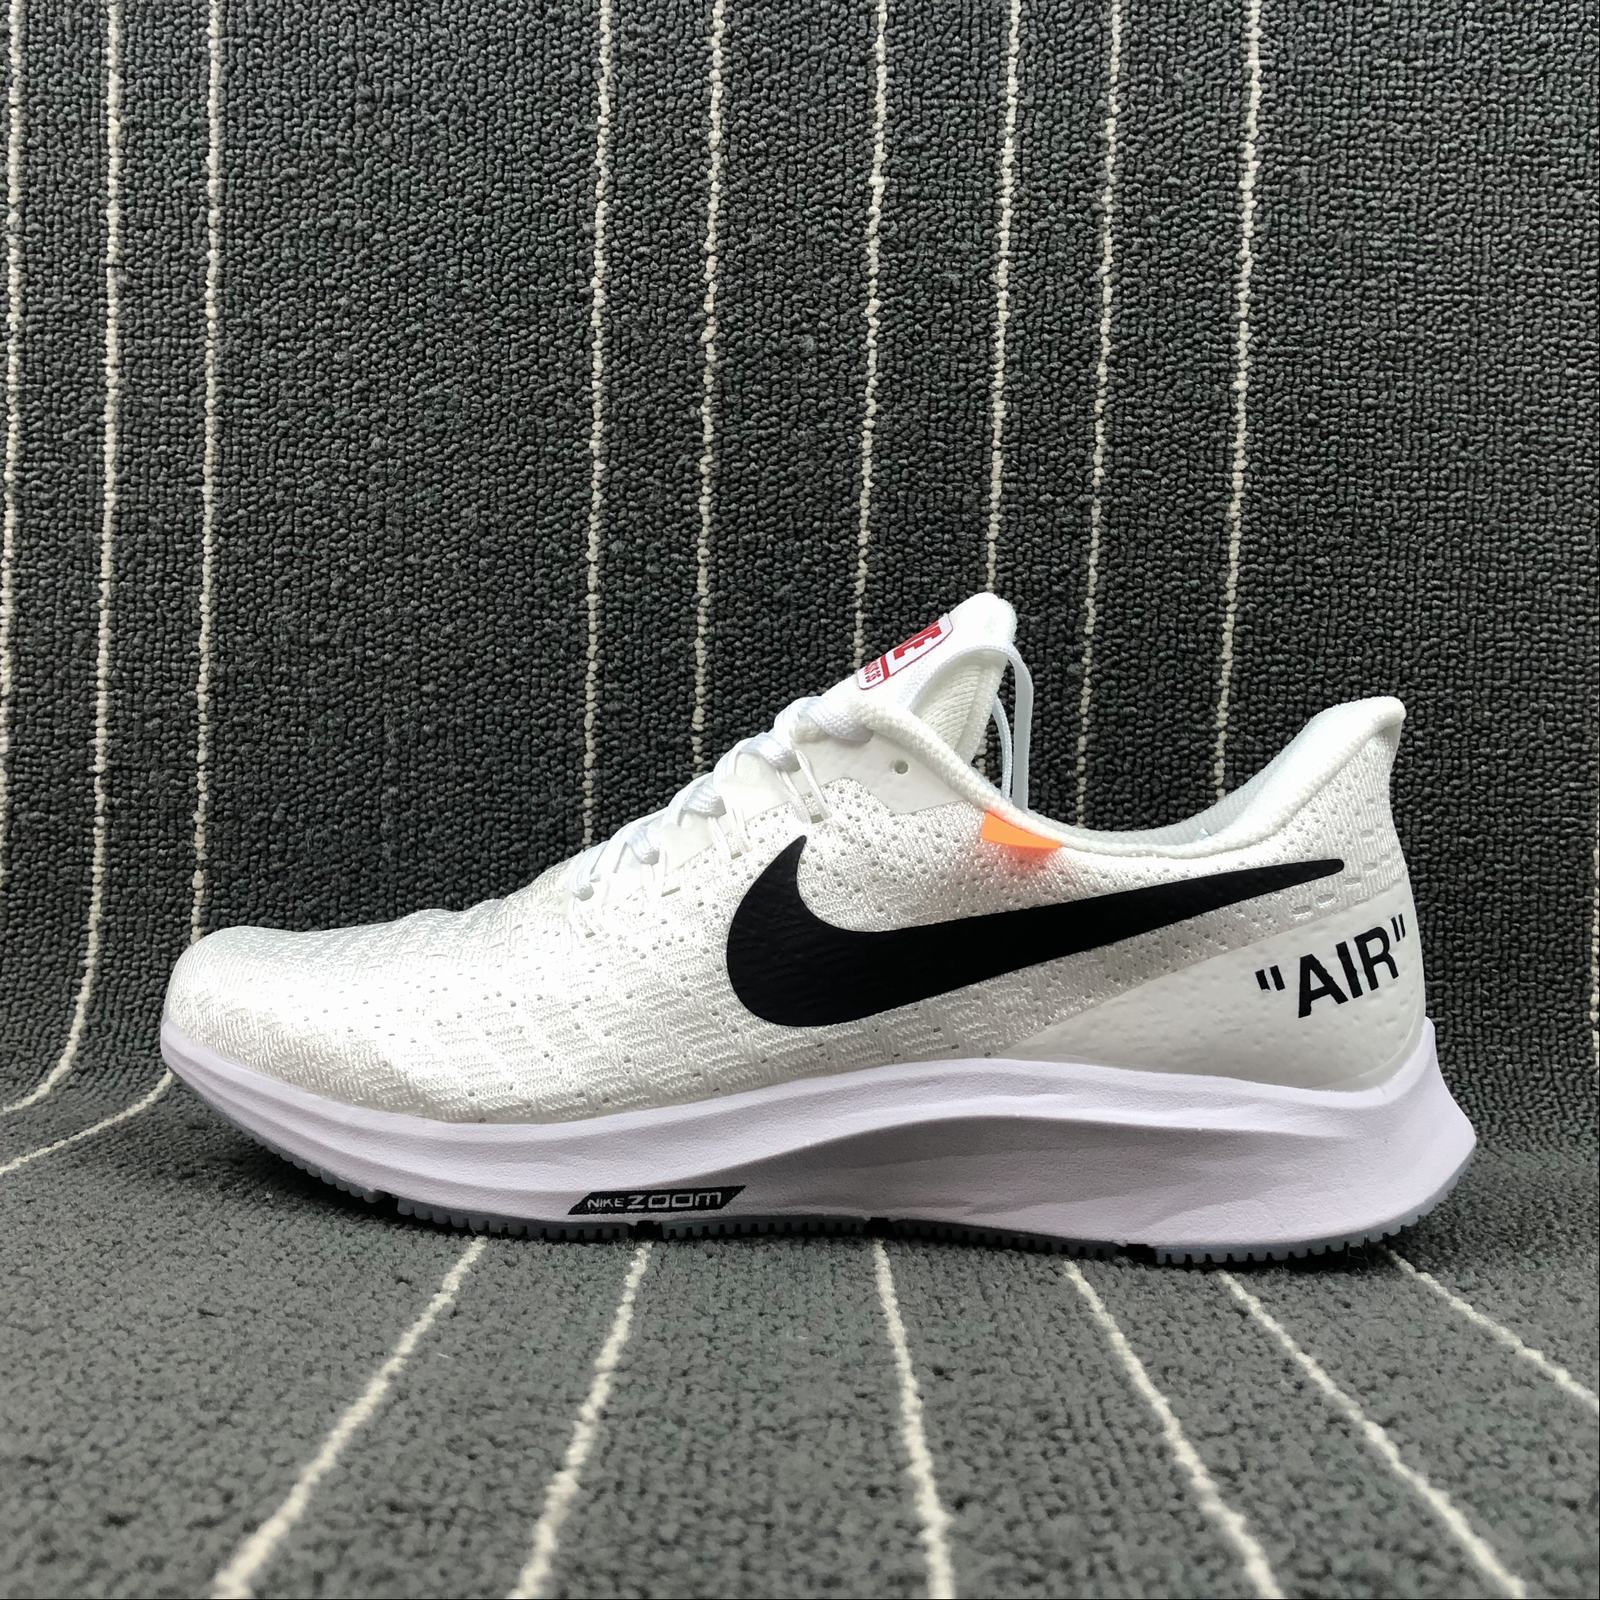 Мужские кроссовки Nike Air Zoom Pegasus 35 x Off-White Men White